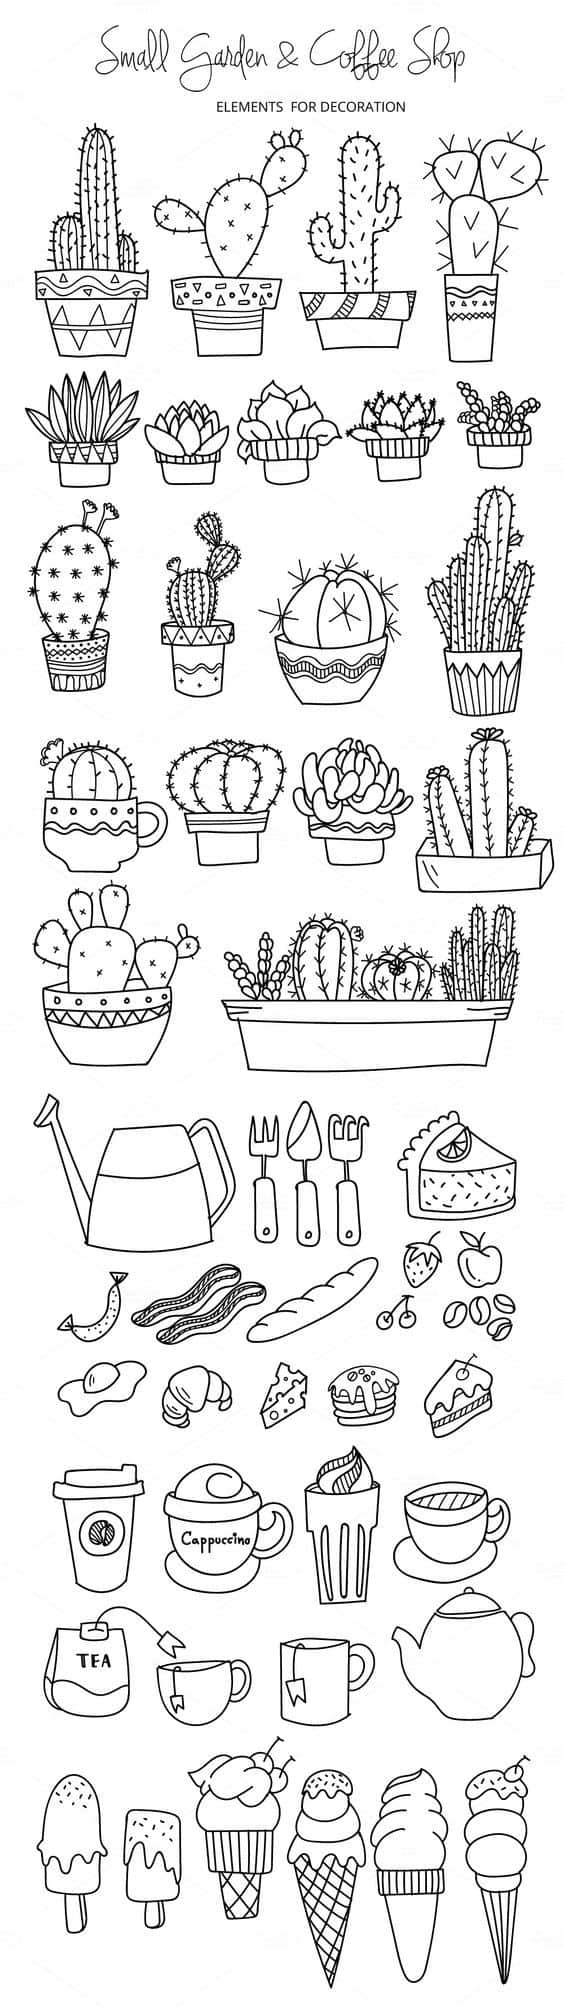 elements of decoration sketched